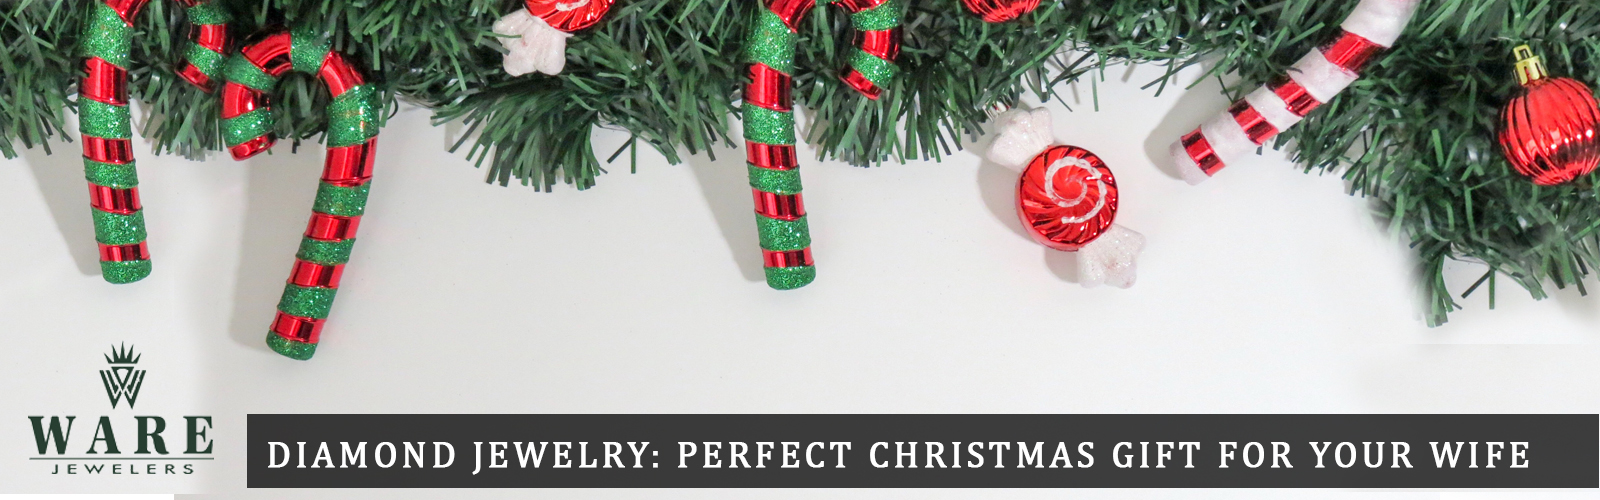 Diamond Jewelry: Perfect Christmas Gift for Your Wife